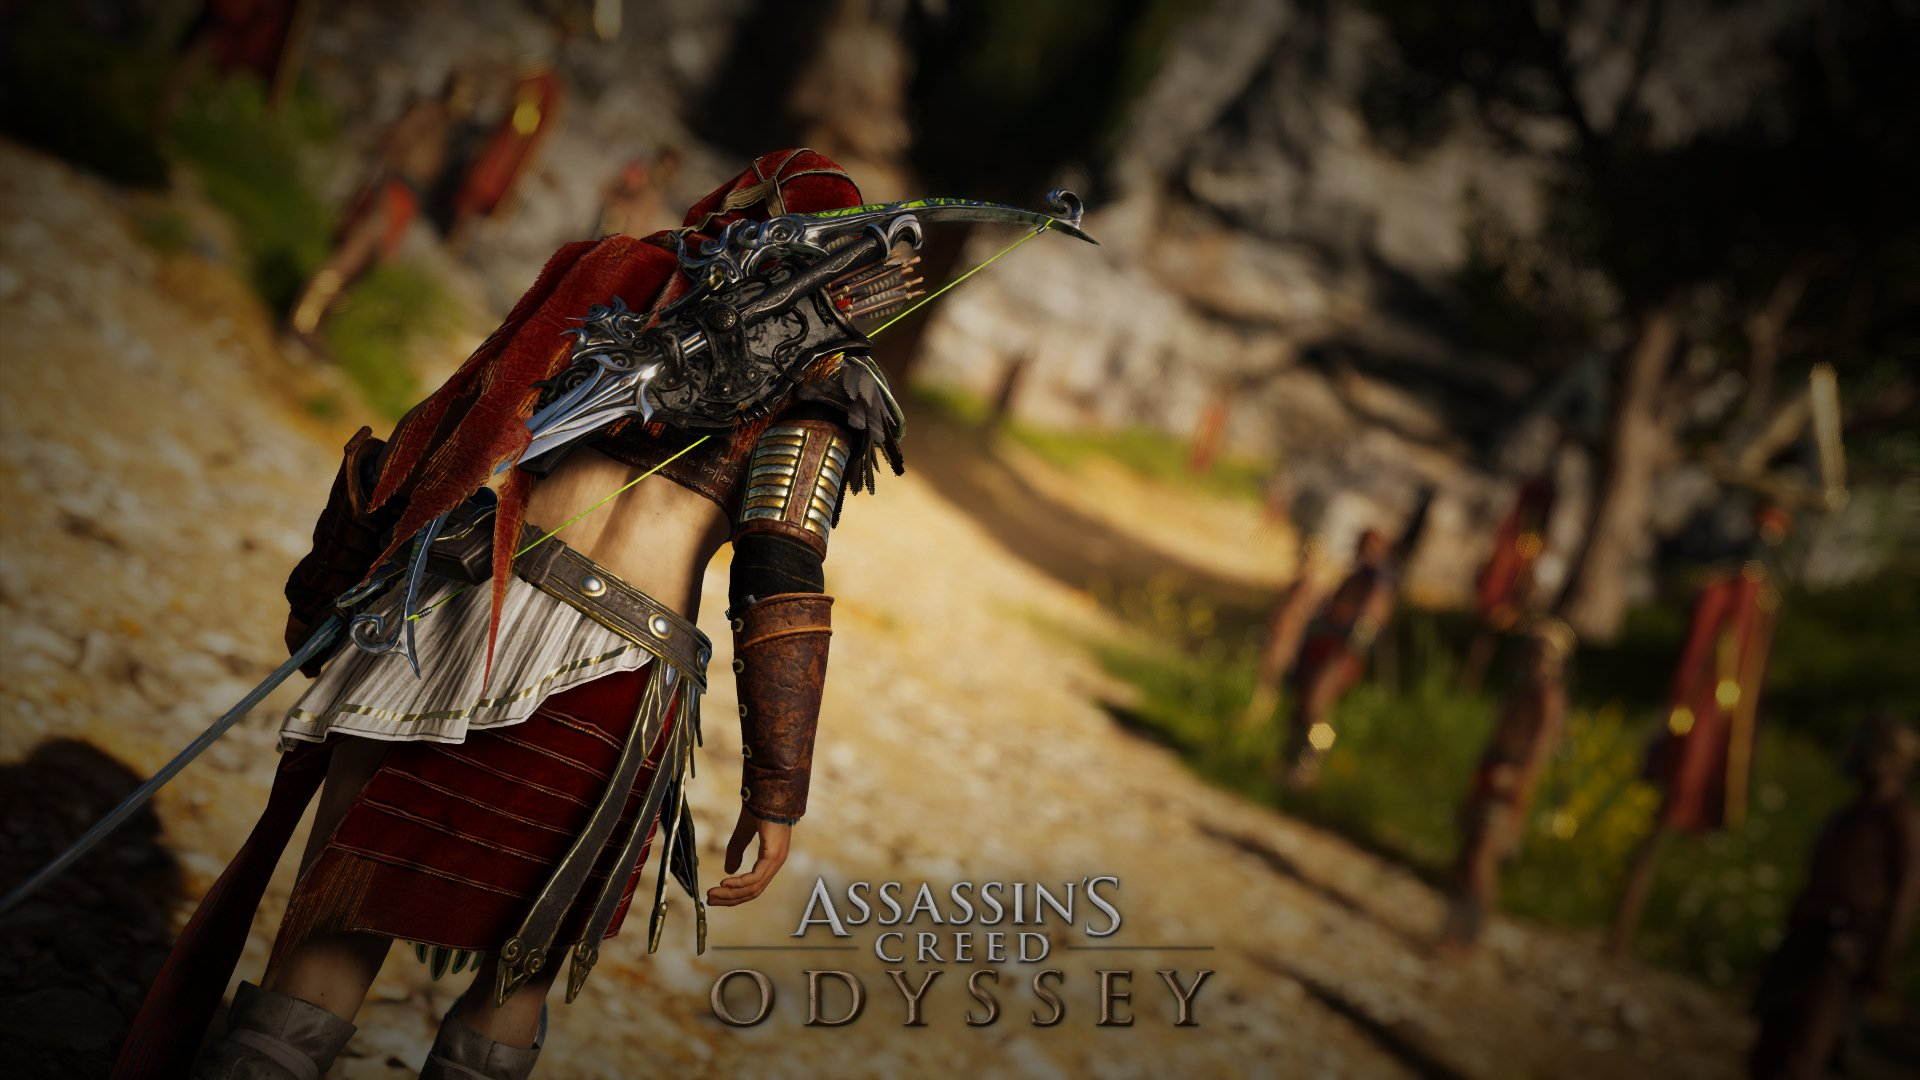 Assassin Creed Odyssey Mod Grafico Graphic Mod at Assassin